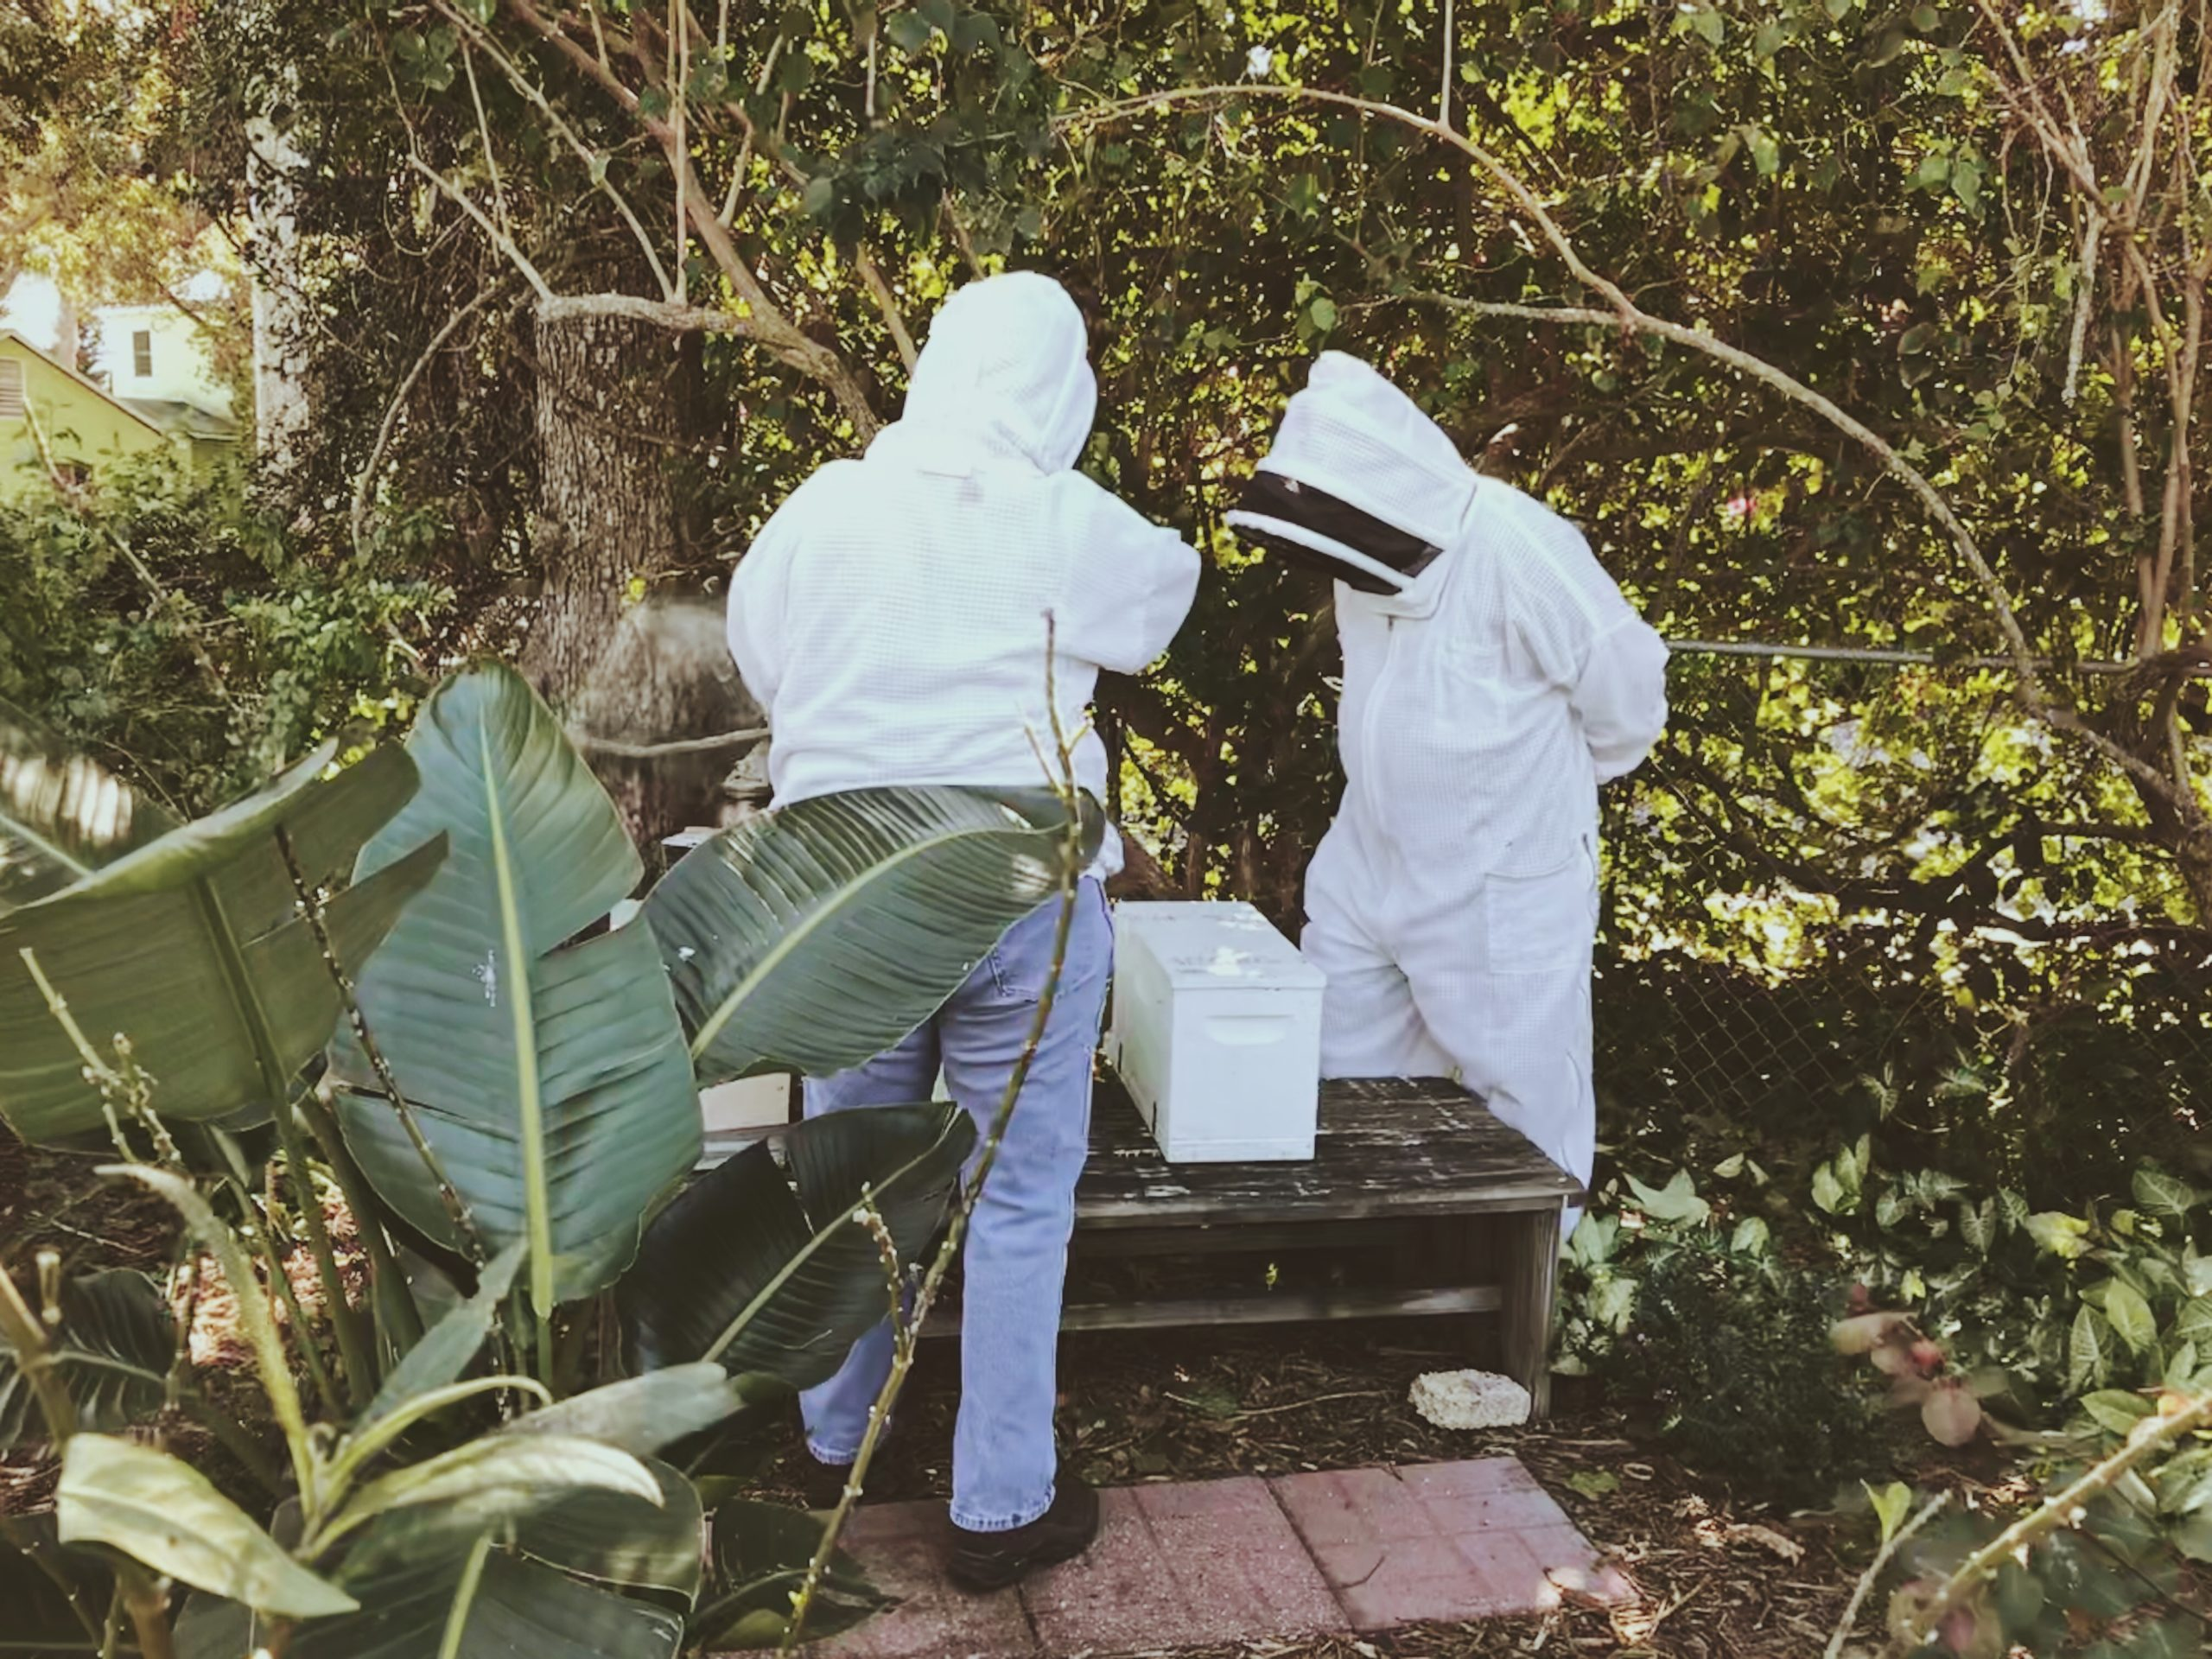 Local beekeepers in St. Petersburg, FL